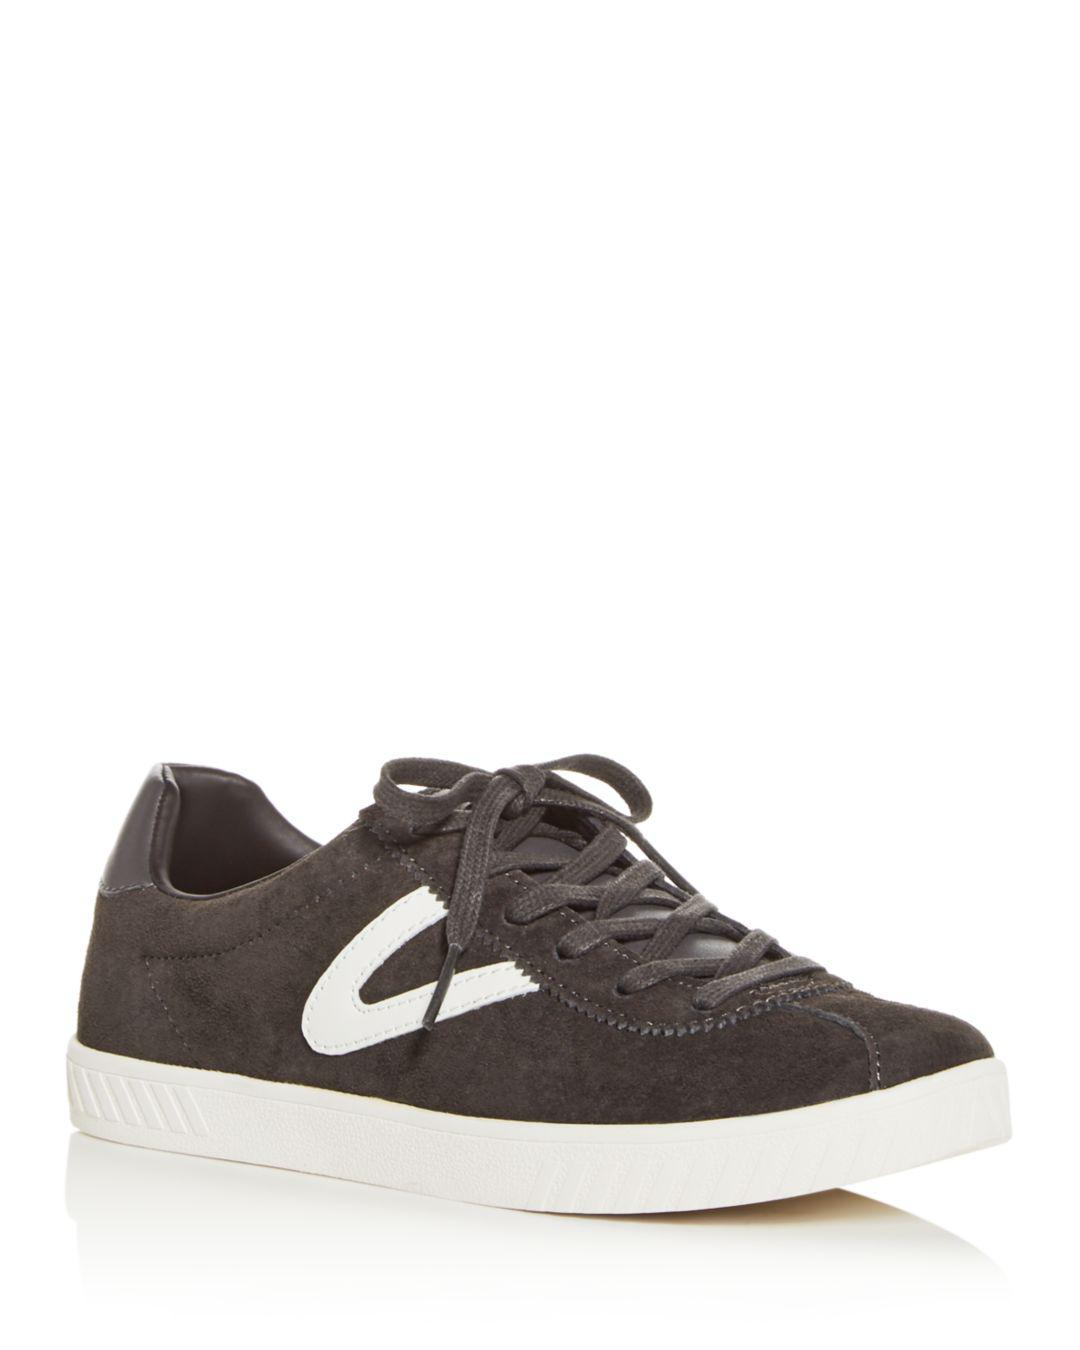 66ccedd560 Lyst - Tretorn Women s Camden Lace-up Sneakers in Gray